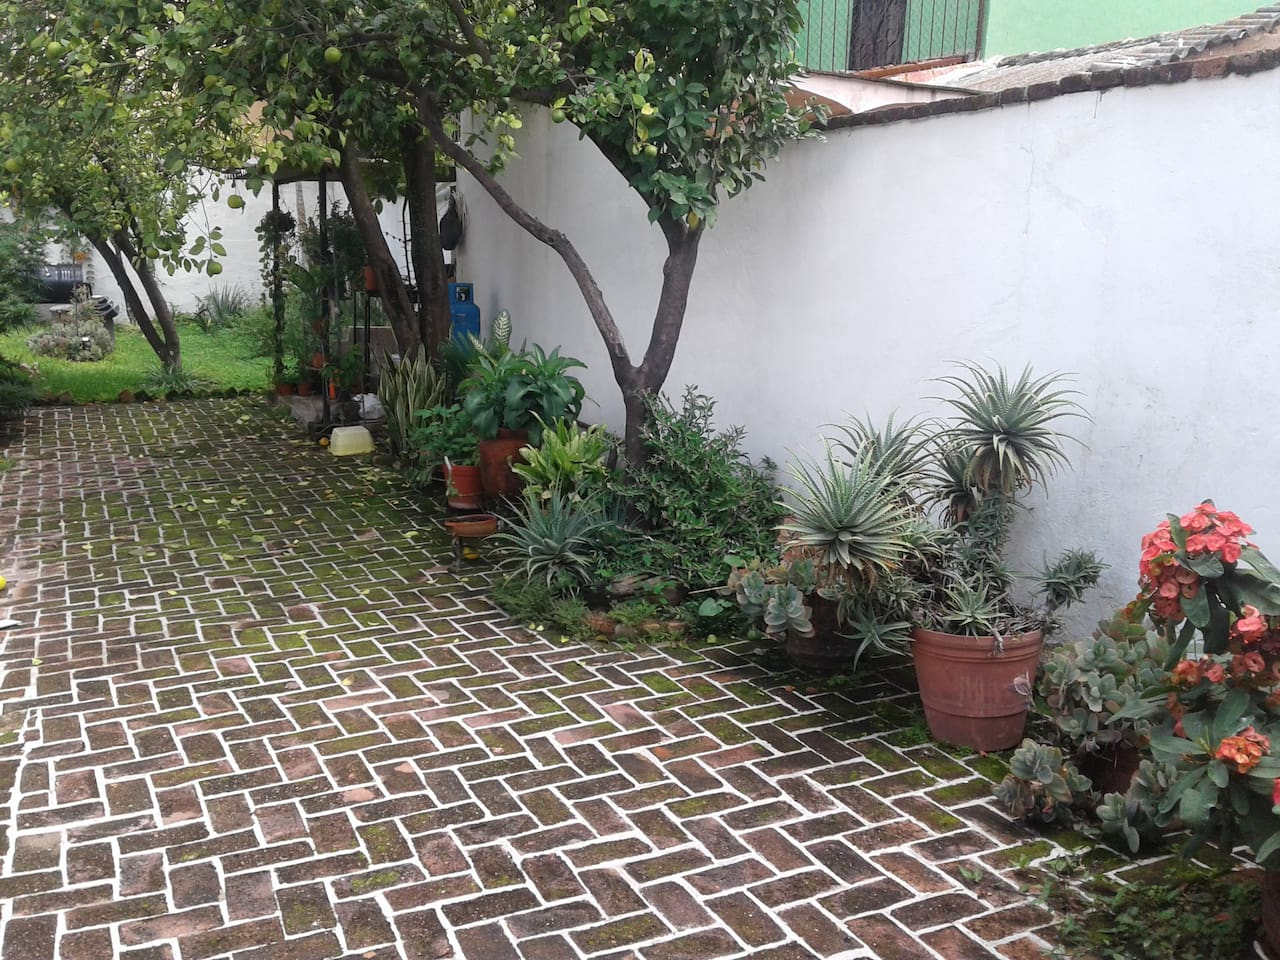 Big Patio with lots of fresh herbs.